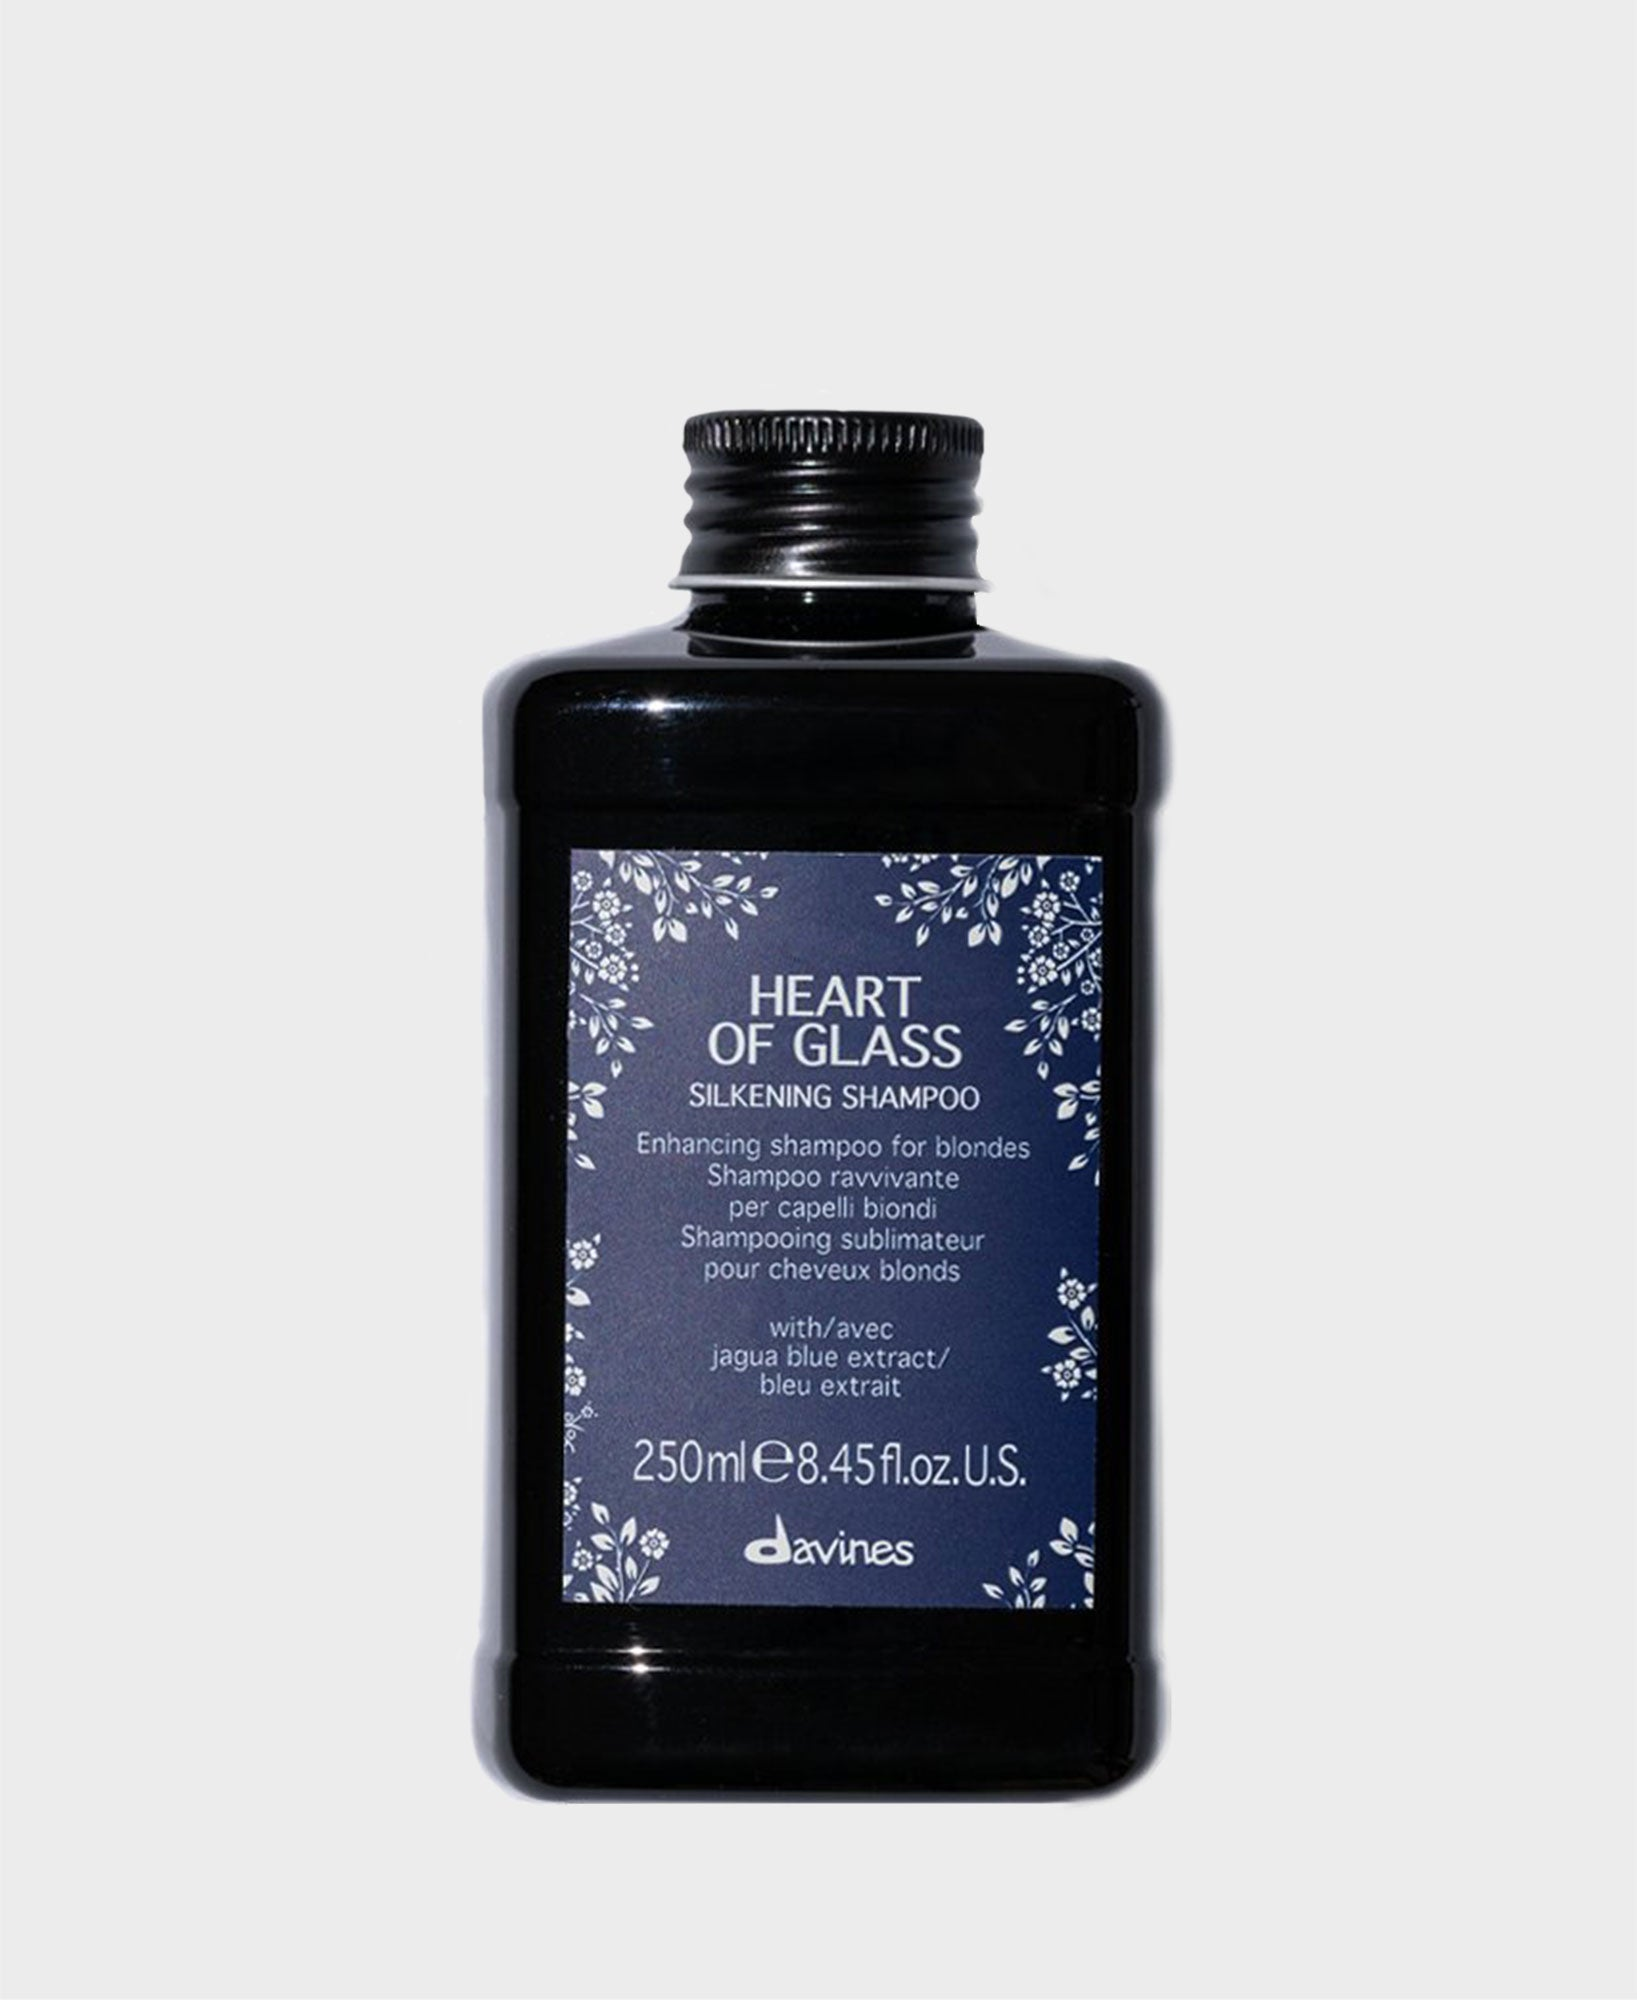 Heart of Glass Silkening Shampoo 250ml